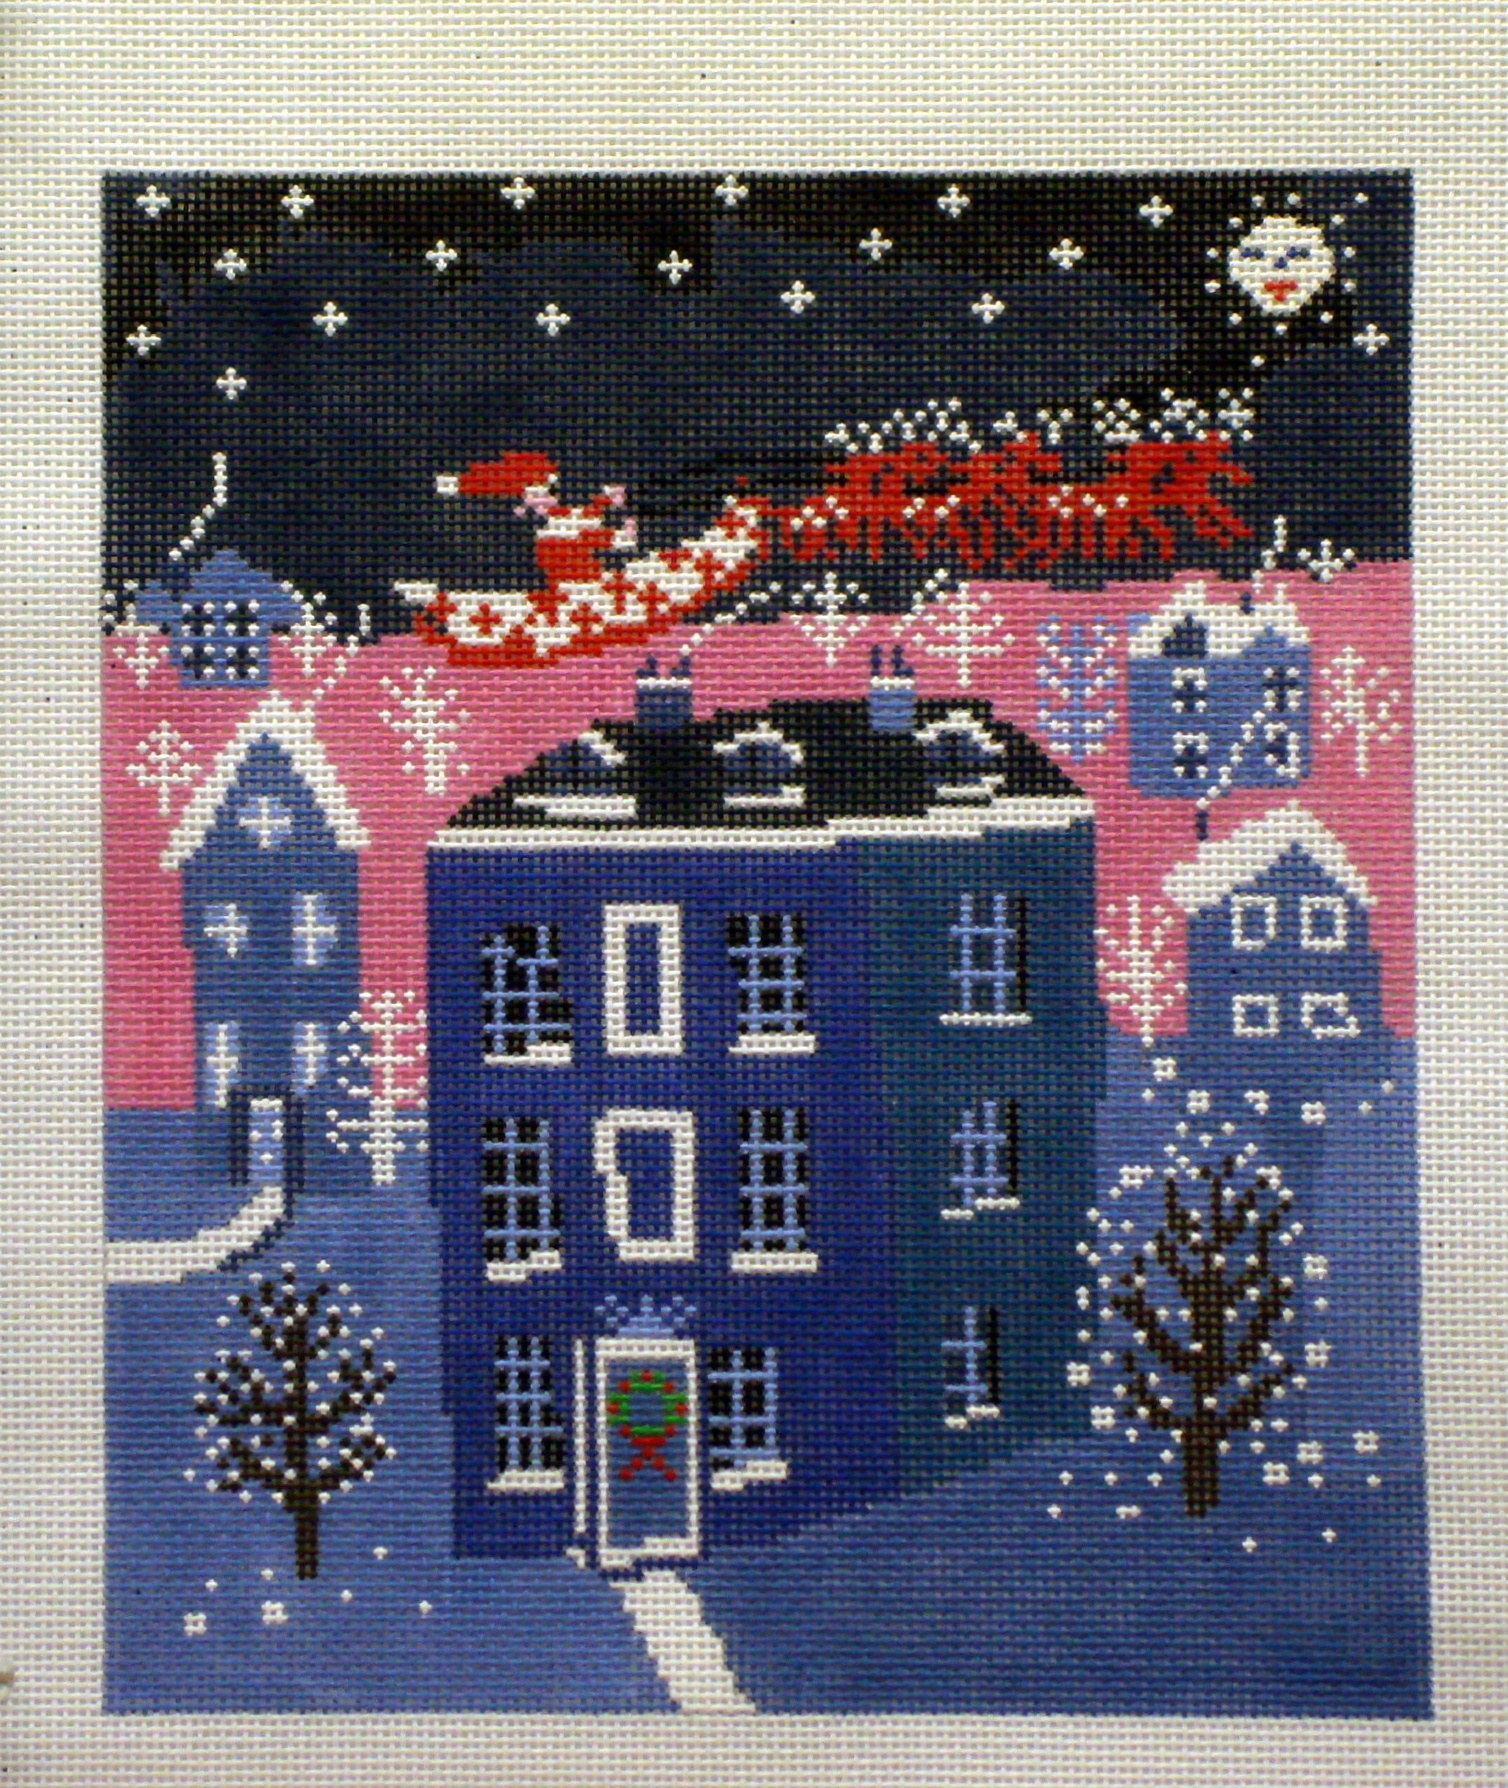 Christmas Eve (Handpainted needlepoint canvas by Birds of a Feather) 18*CC-706